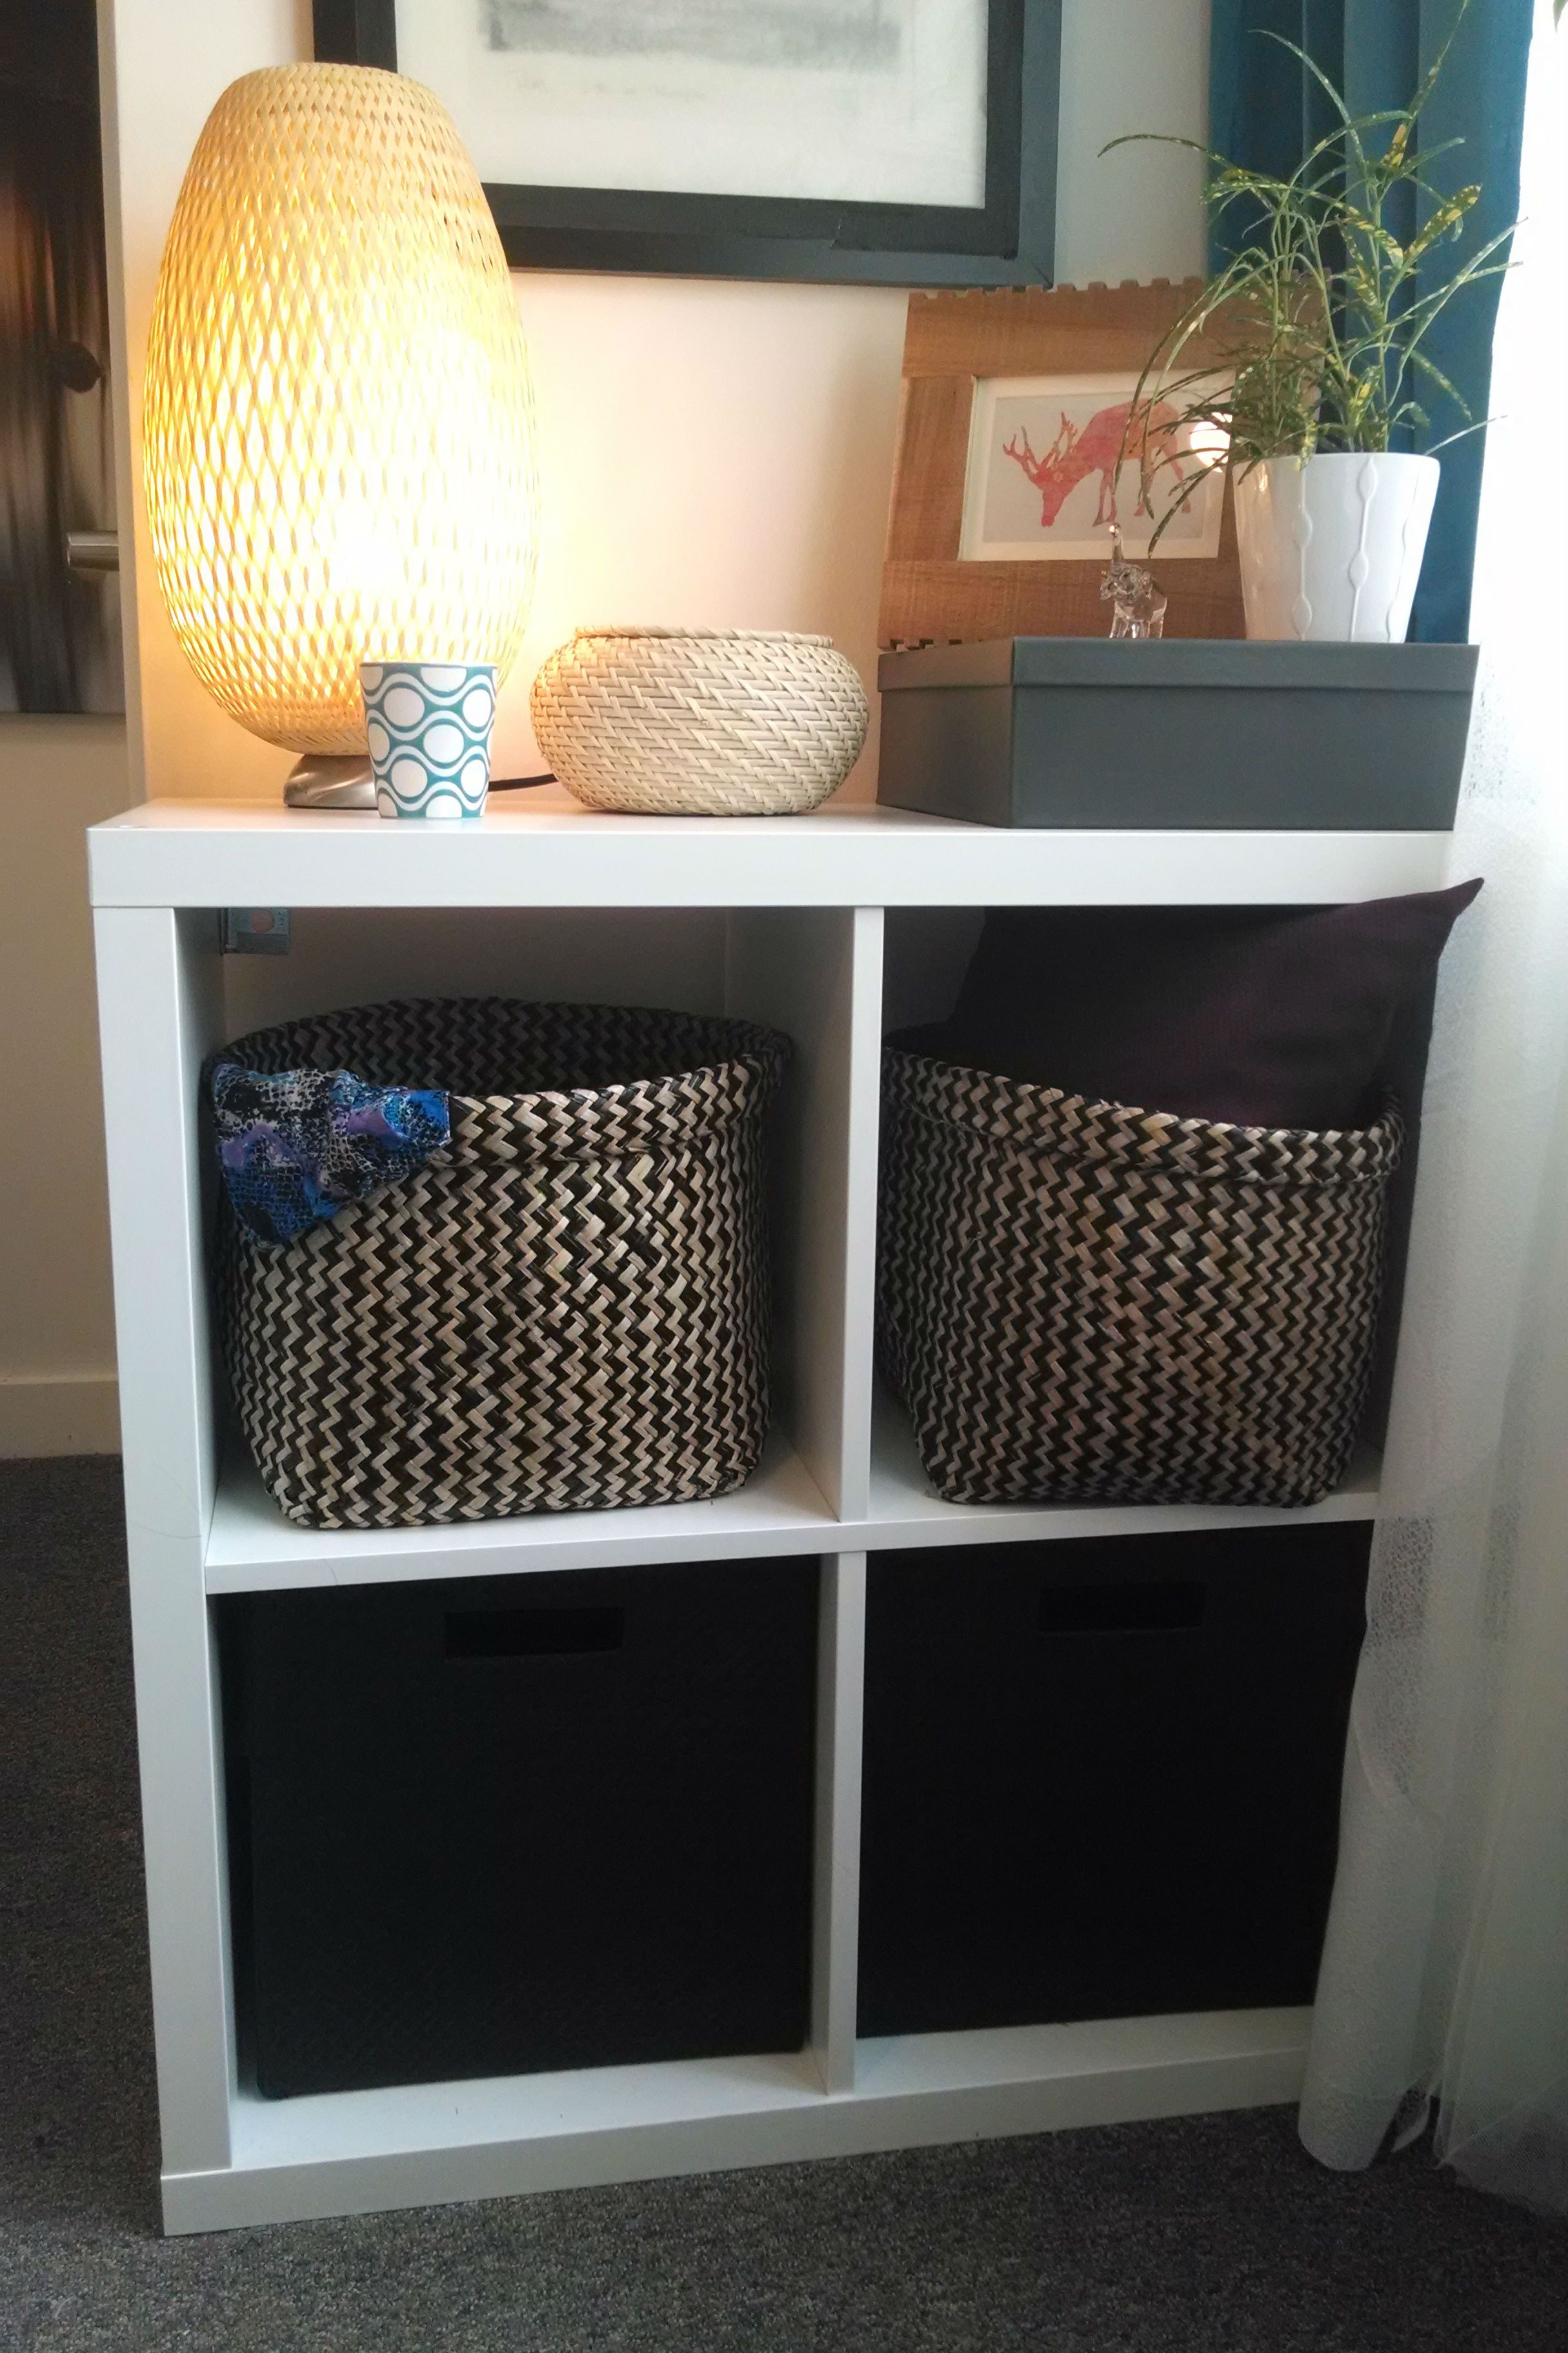 kallax shelf unit white ikea home tour makeovers ikea kallax shelving unit kallax. Black Bedroom Furniture Sets. Home Design Ideas